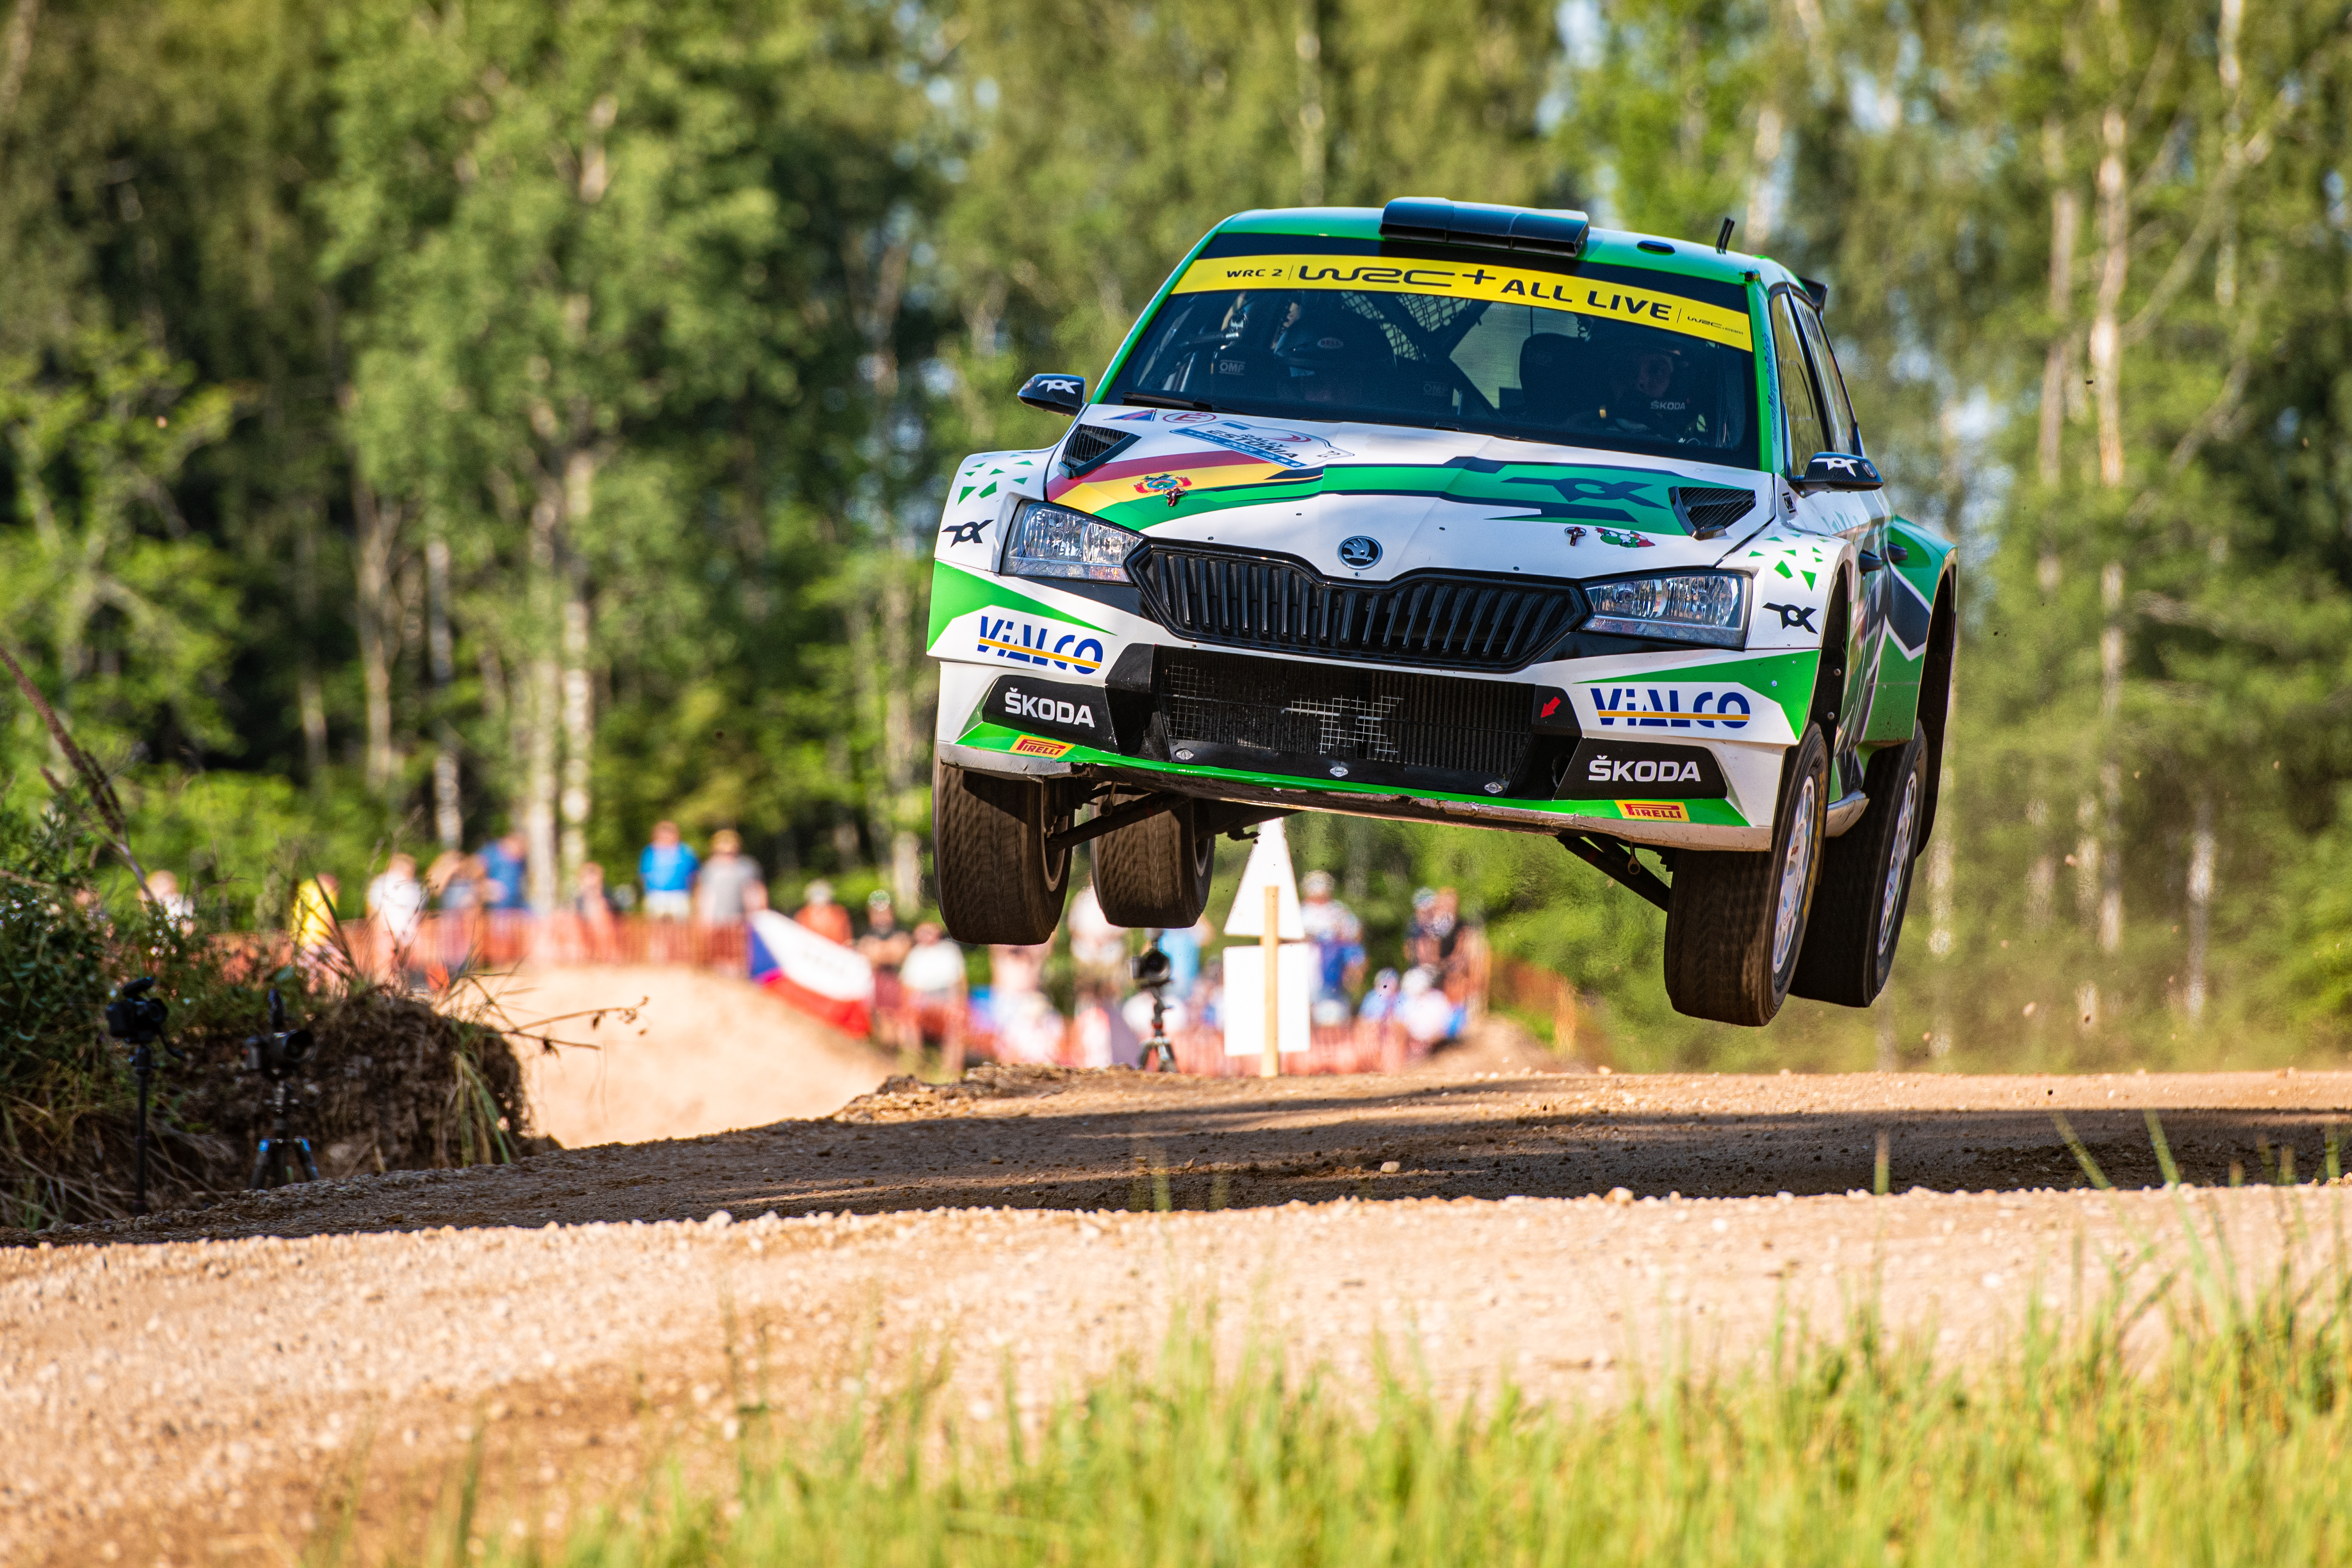 Acropolis Rally Greece: SKODA driver Andreas Mikkelsen wants to keep WRC2 title chances alive - Image 2